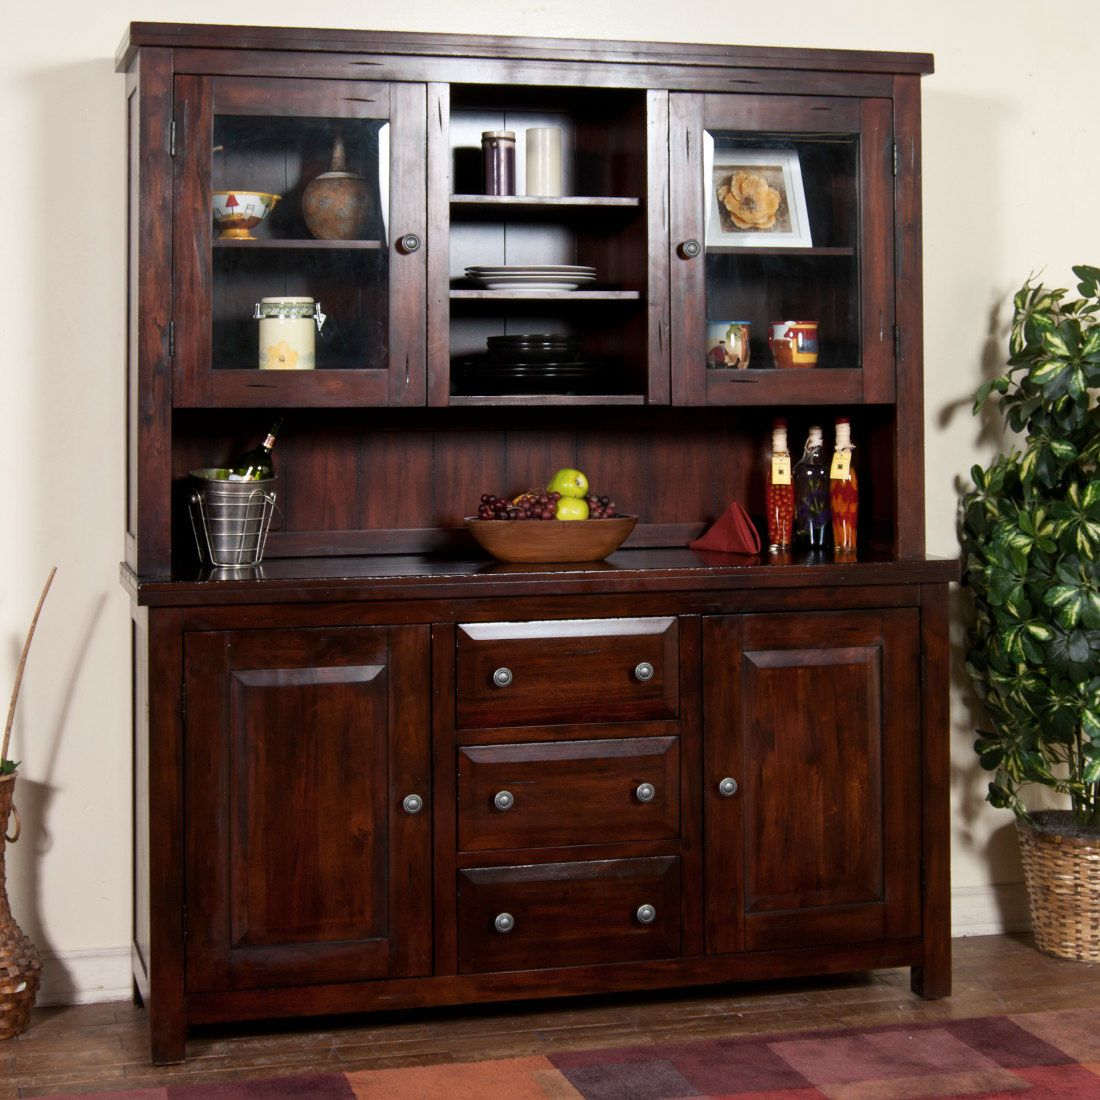 Dining Room Hutch  What Nobody Told You About Decorating The Extraordinary Corner Dining Room Hutch Decorating Inspiration